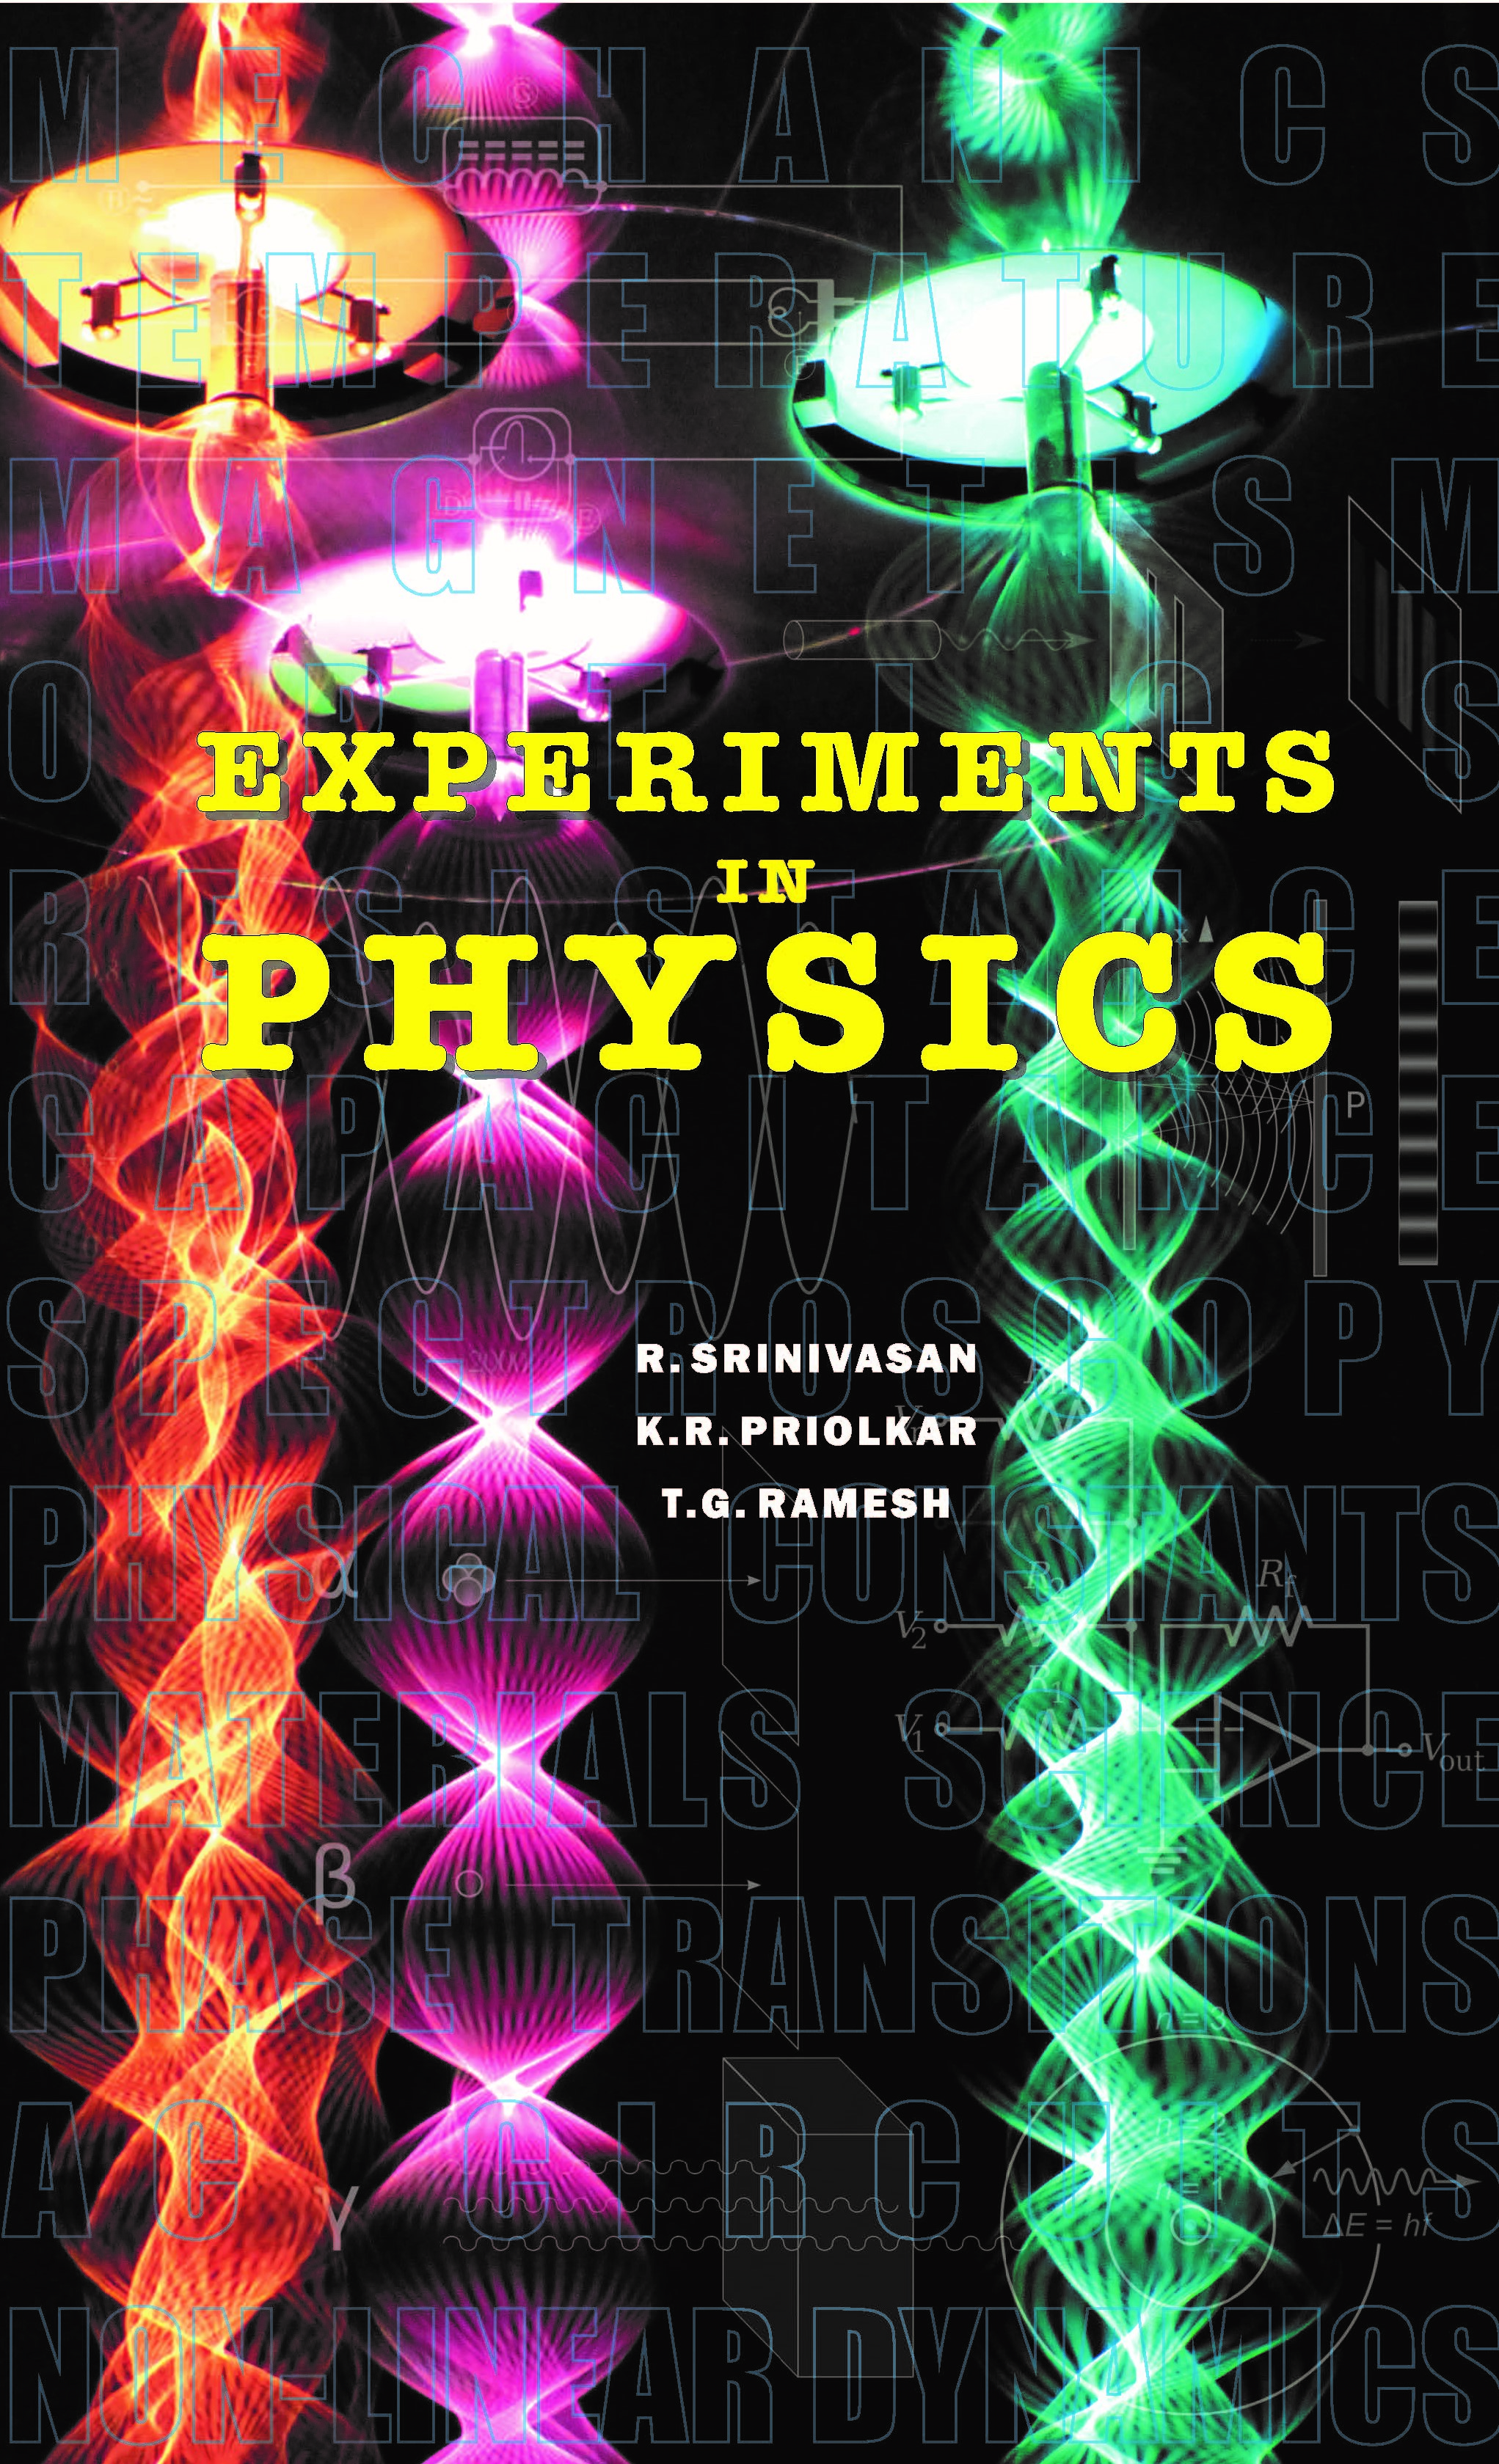 A Manual on Experiments in Physics